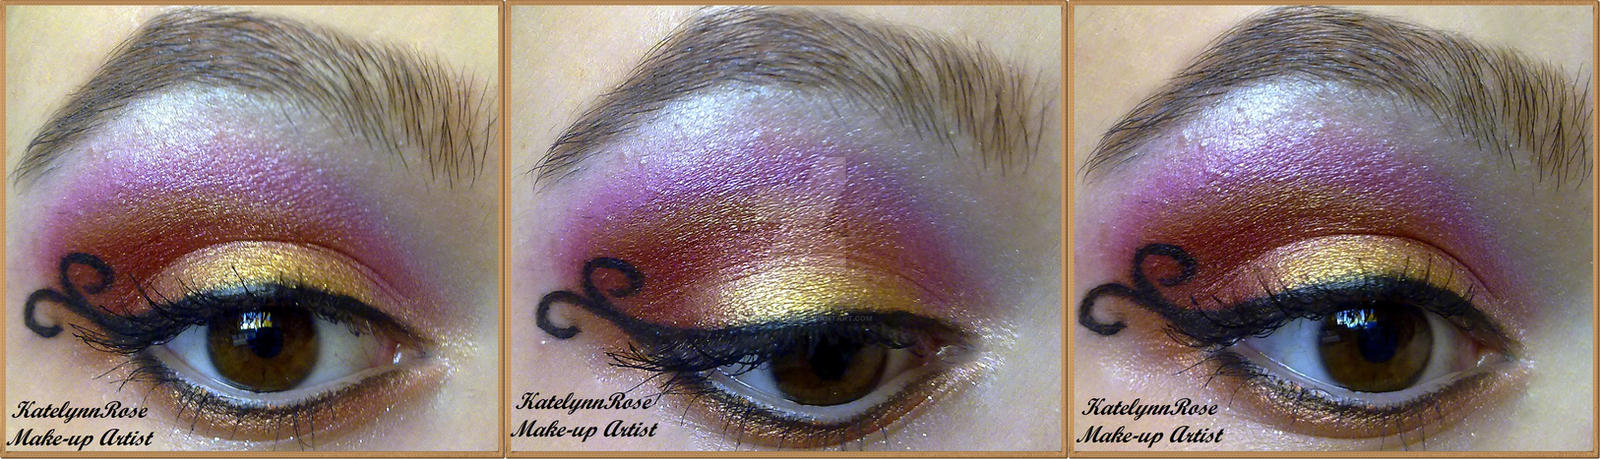 Aries make-up inspired by KatelynnRose